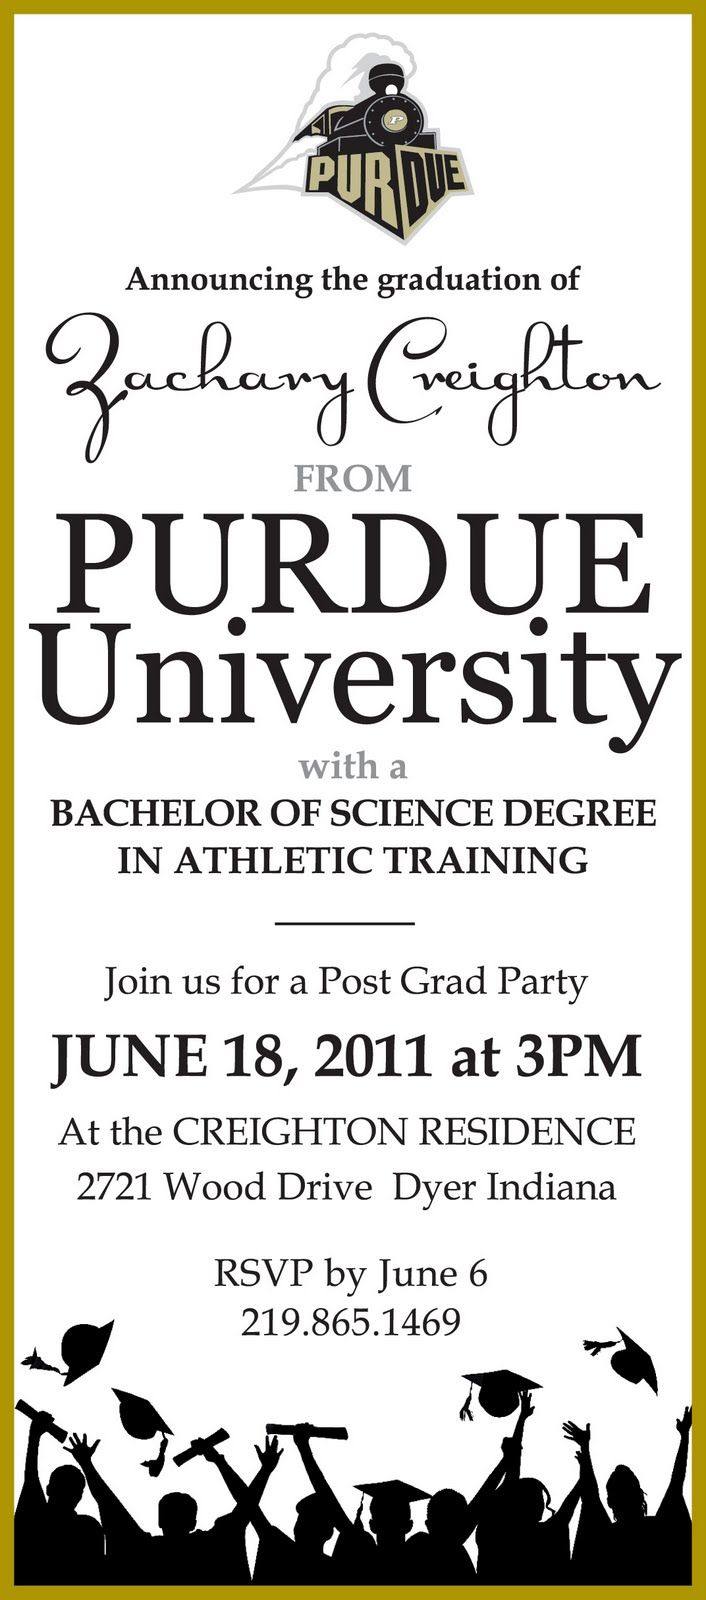 Color printing purdue - Purdue Logo Graduation Invitation Purdue University Graduation Party Invitation Along With A High School